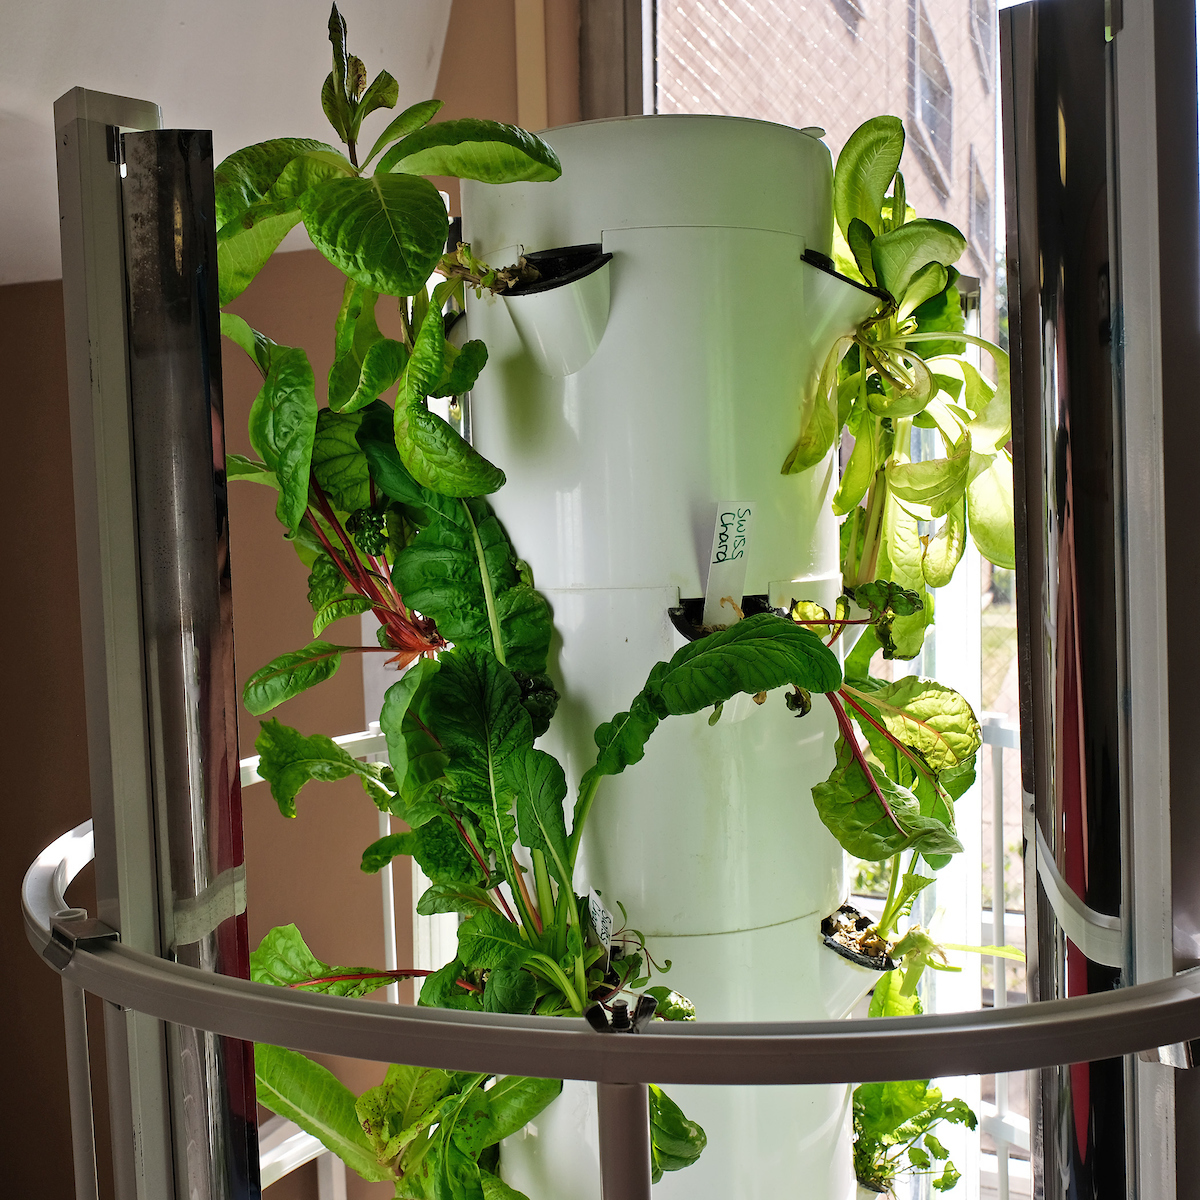 Aeroponic tower